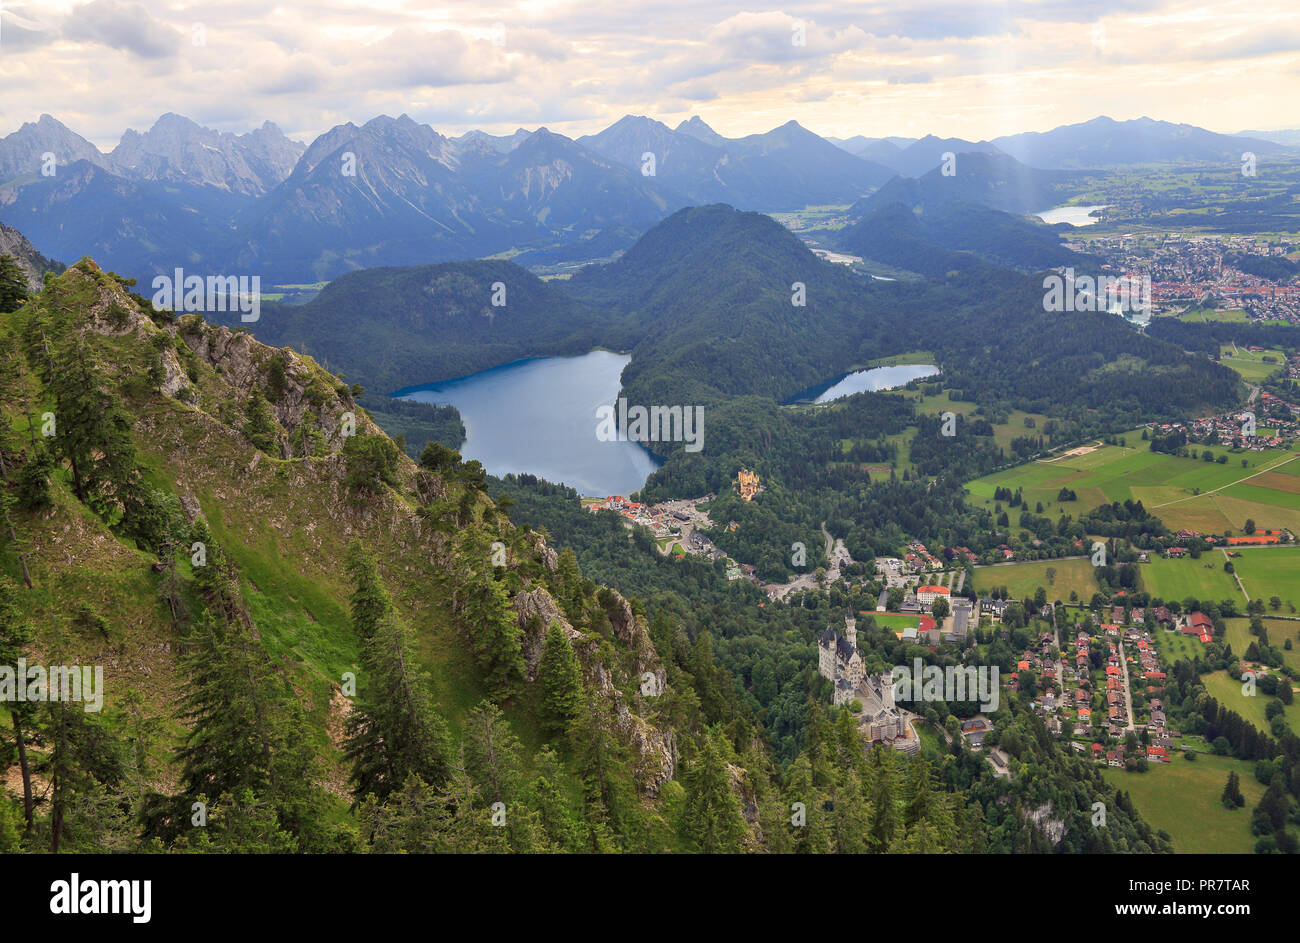 Aerial view of Neuschwanstein Castle, Alpsee Lake, Fussen and Bavarian Alps in Germany - Stock Image